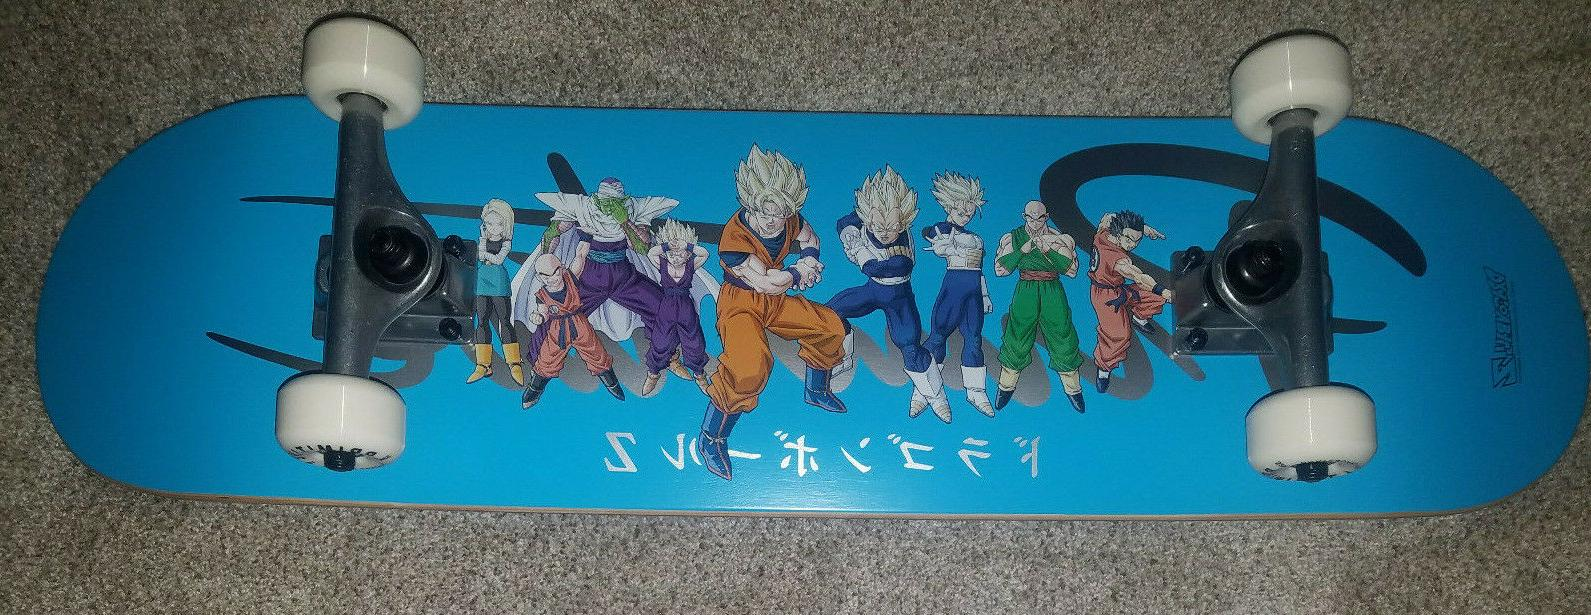 x dragon ball factory assembled complete 8